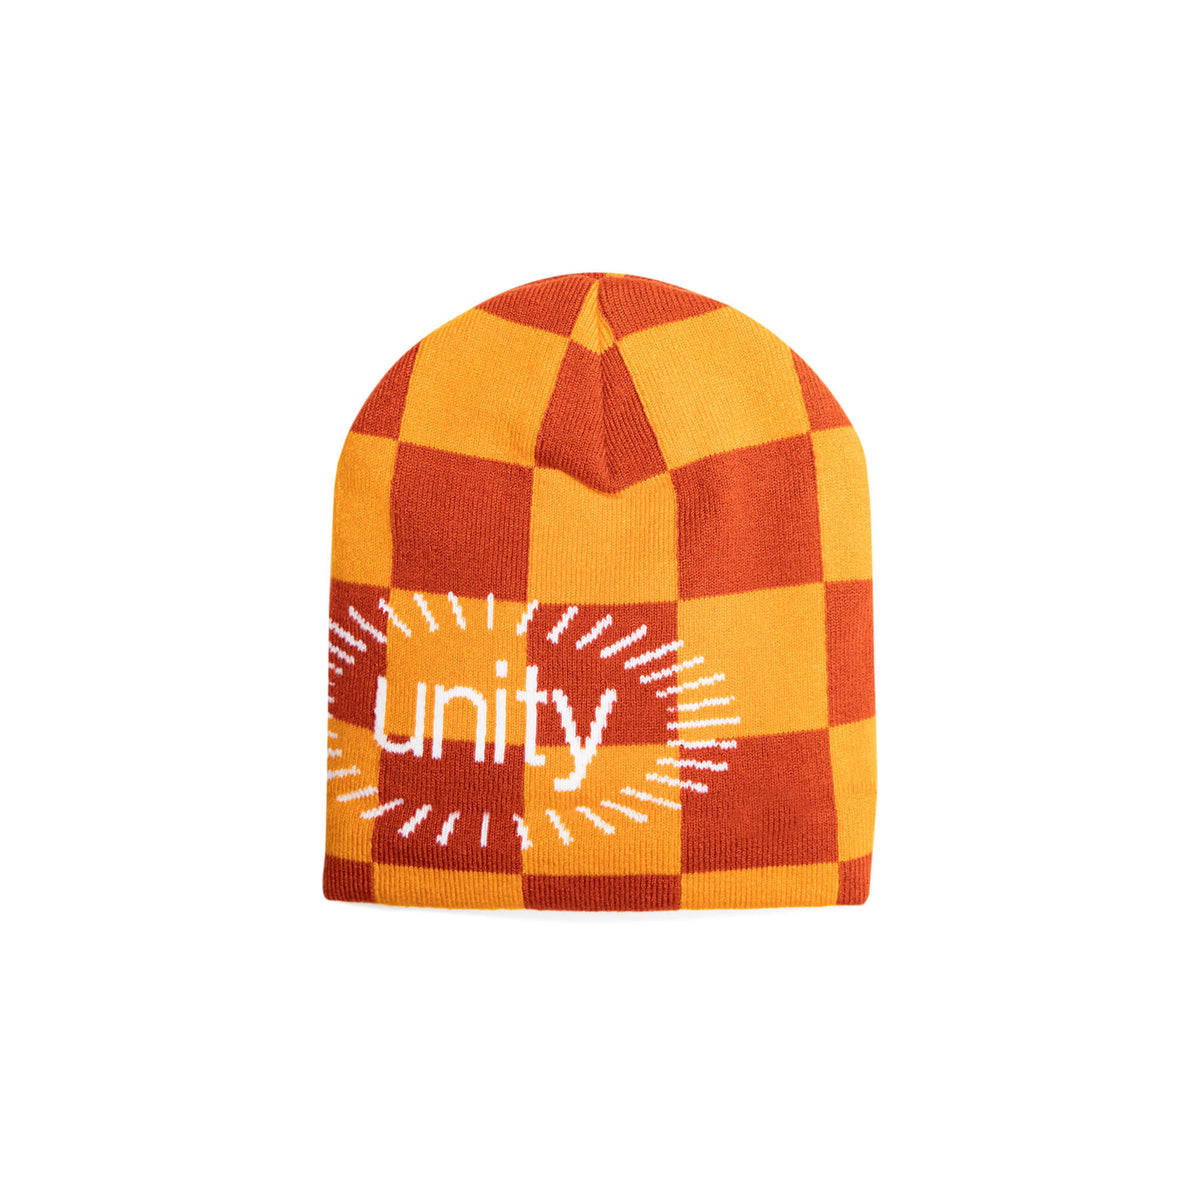 orange toque with text black owned business